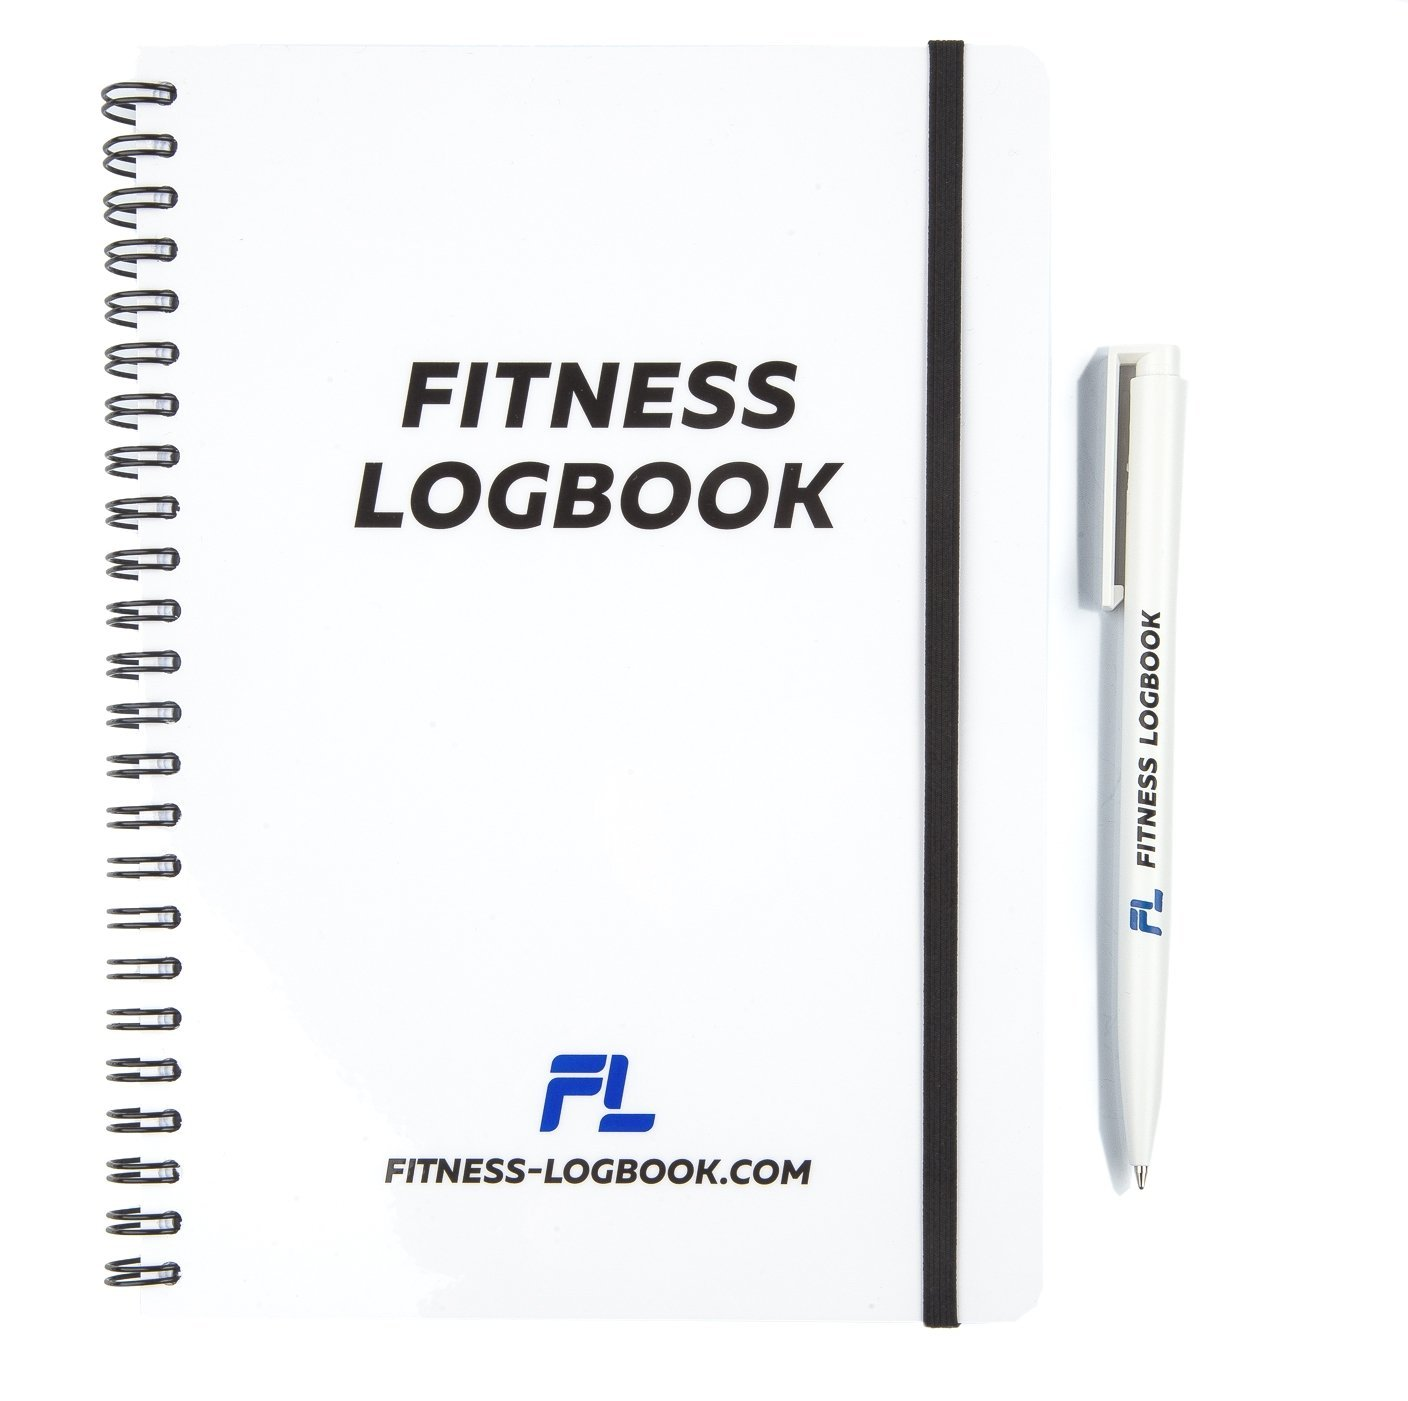 Fitness Logbook BIG: Undated Workout Journal w/ Pen - 6 x 8 inches - 75 Workouts - Thick Paper, Durable Cover, Round Corners, Wire-bound - Stylish And Easy-To-Use Gym Log Book